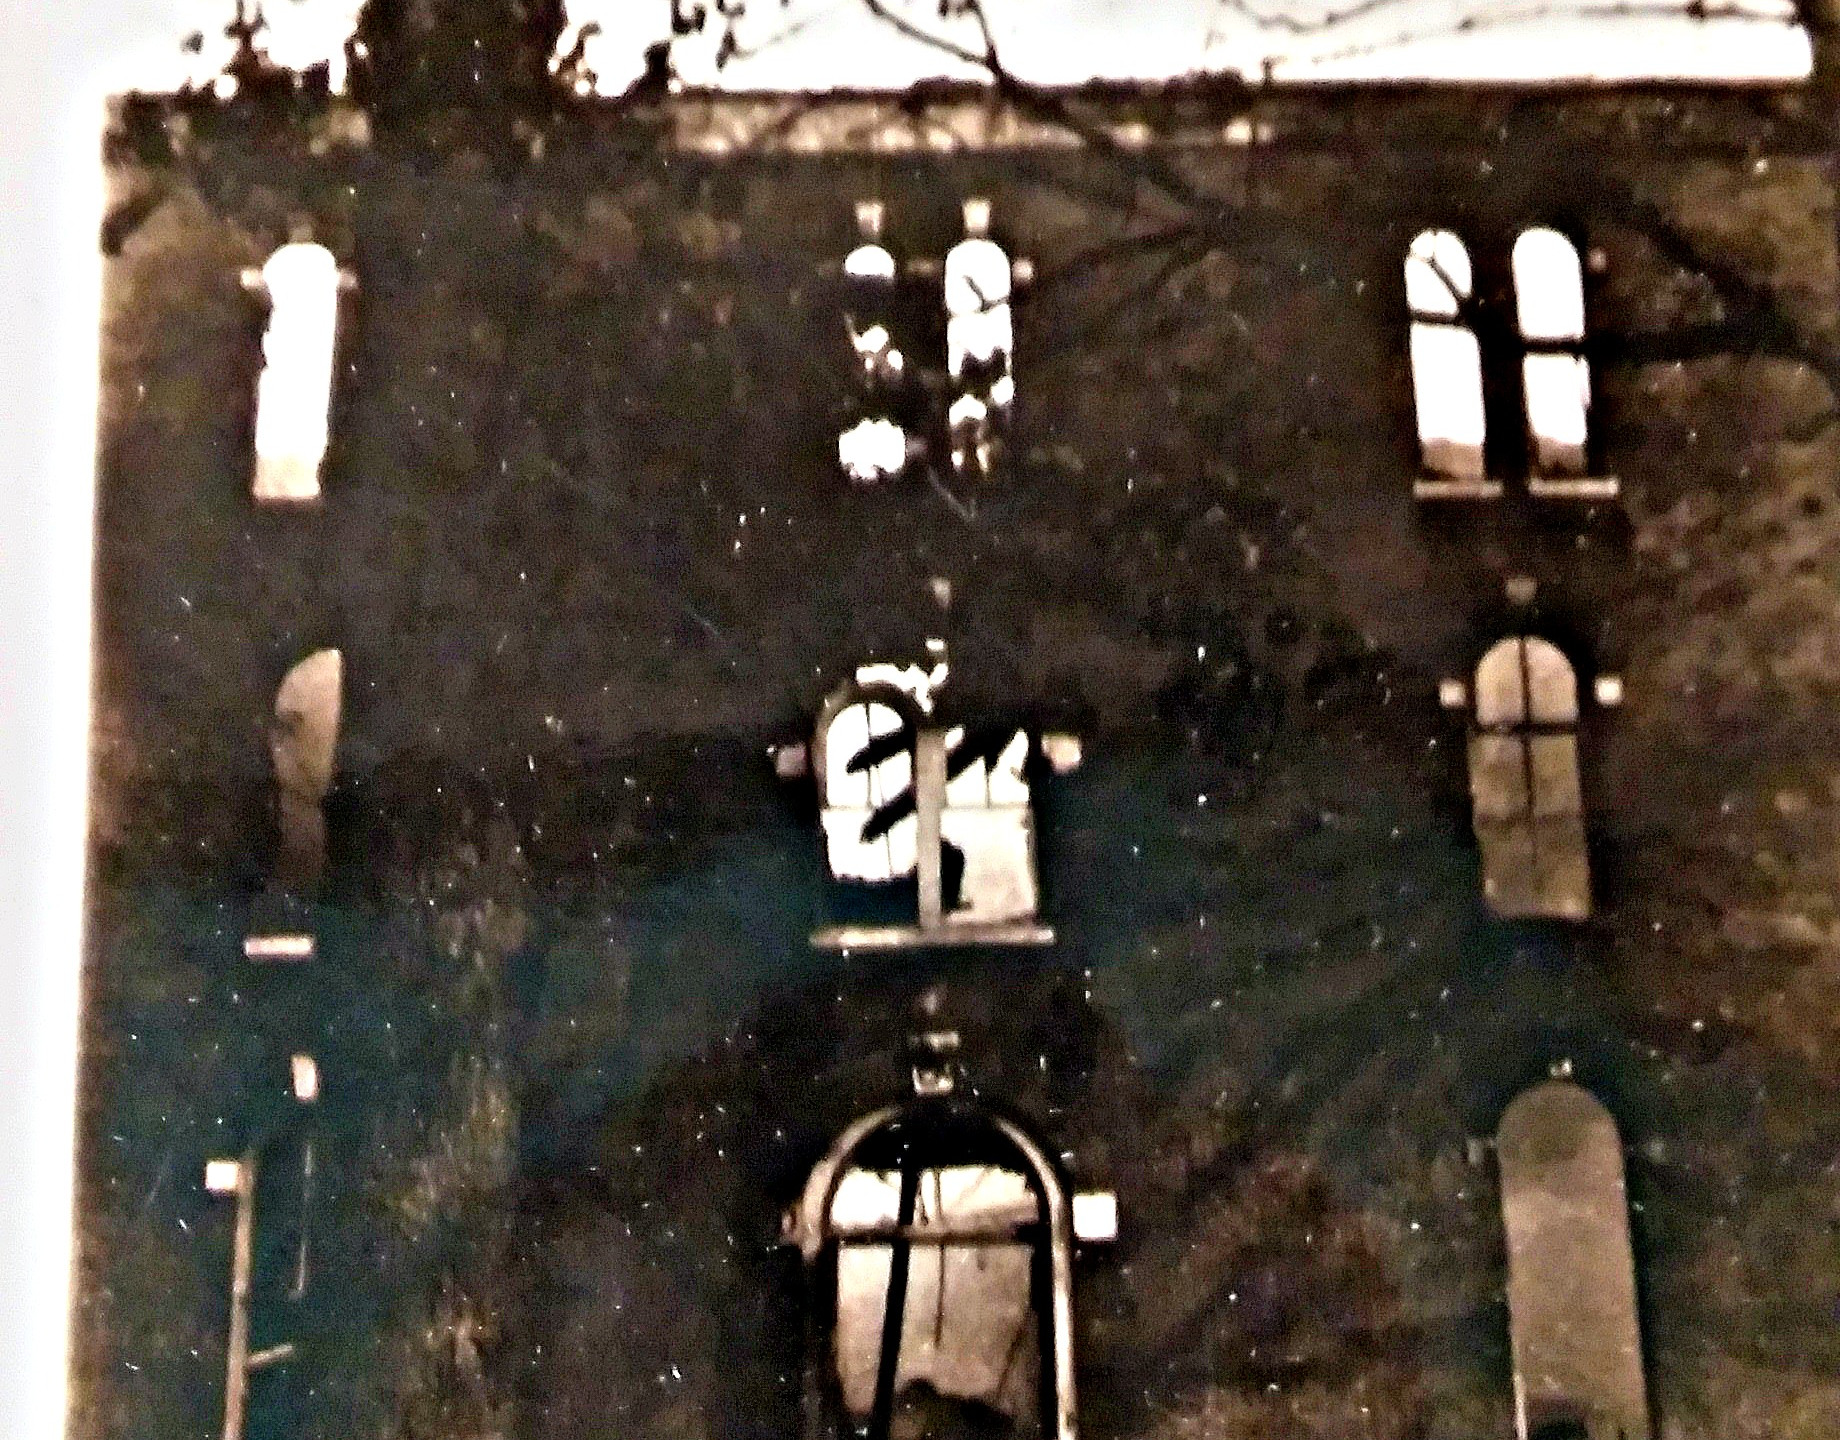 Parsons Hall burned on Feb. 28, 1928. What was once a dormitory, Parsons Hall was reduced to ash and brick./Courtesy photo